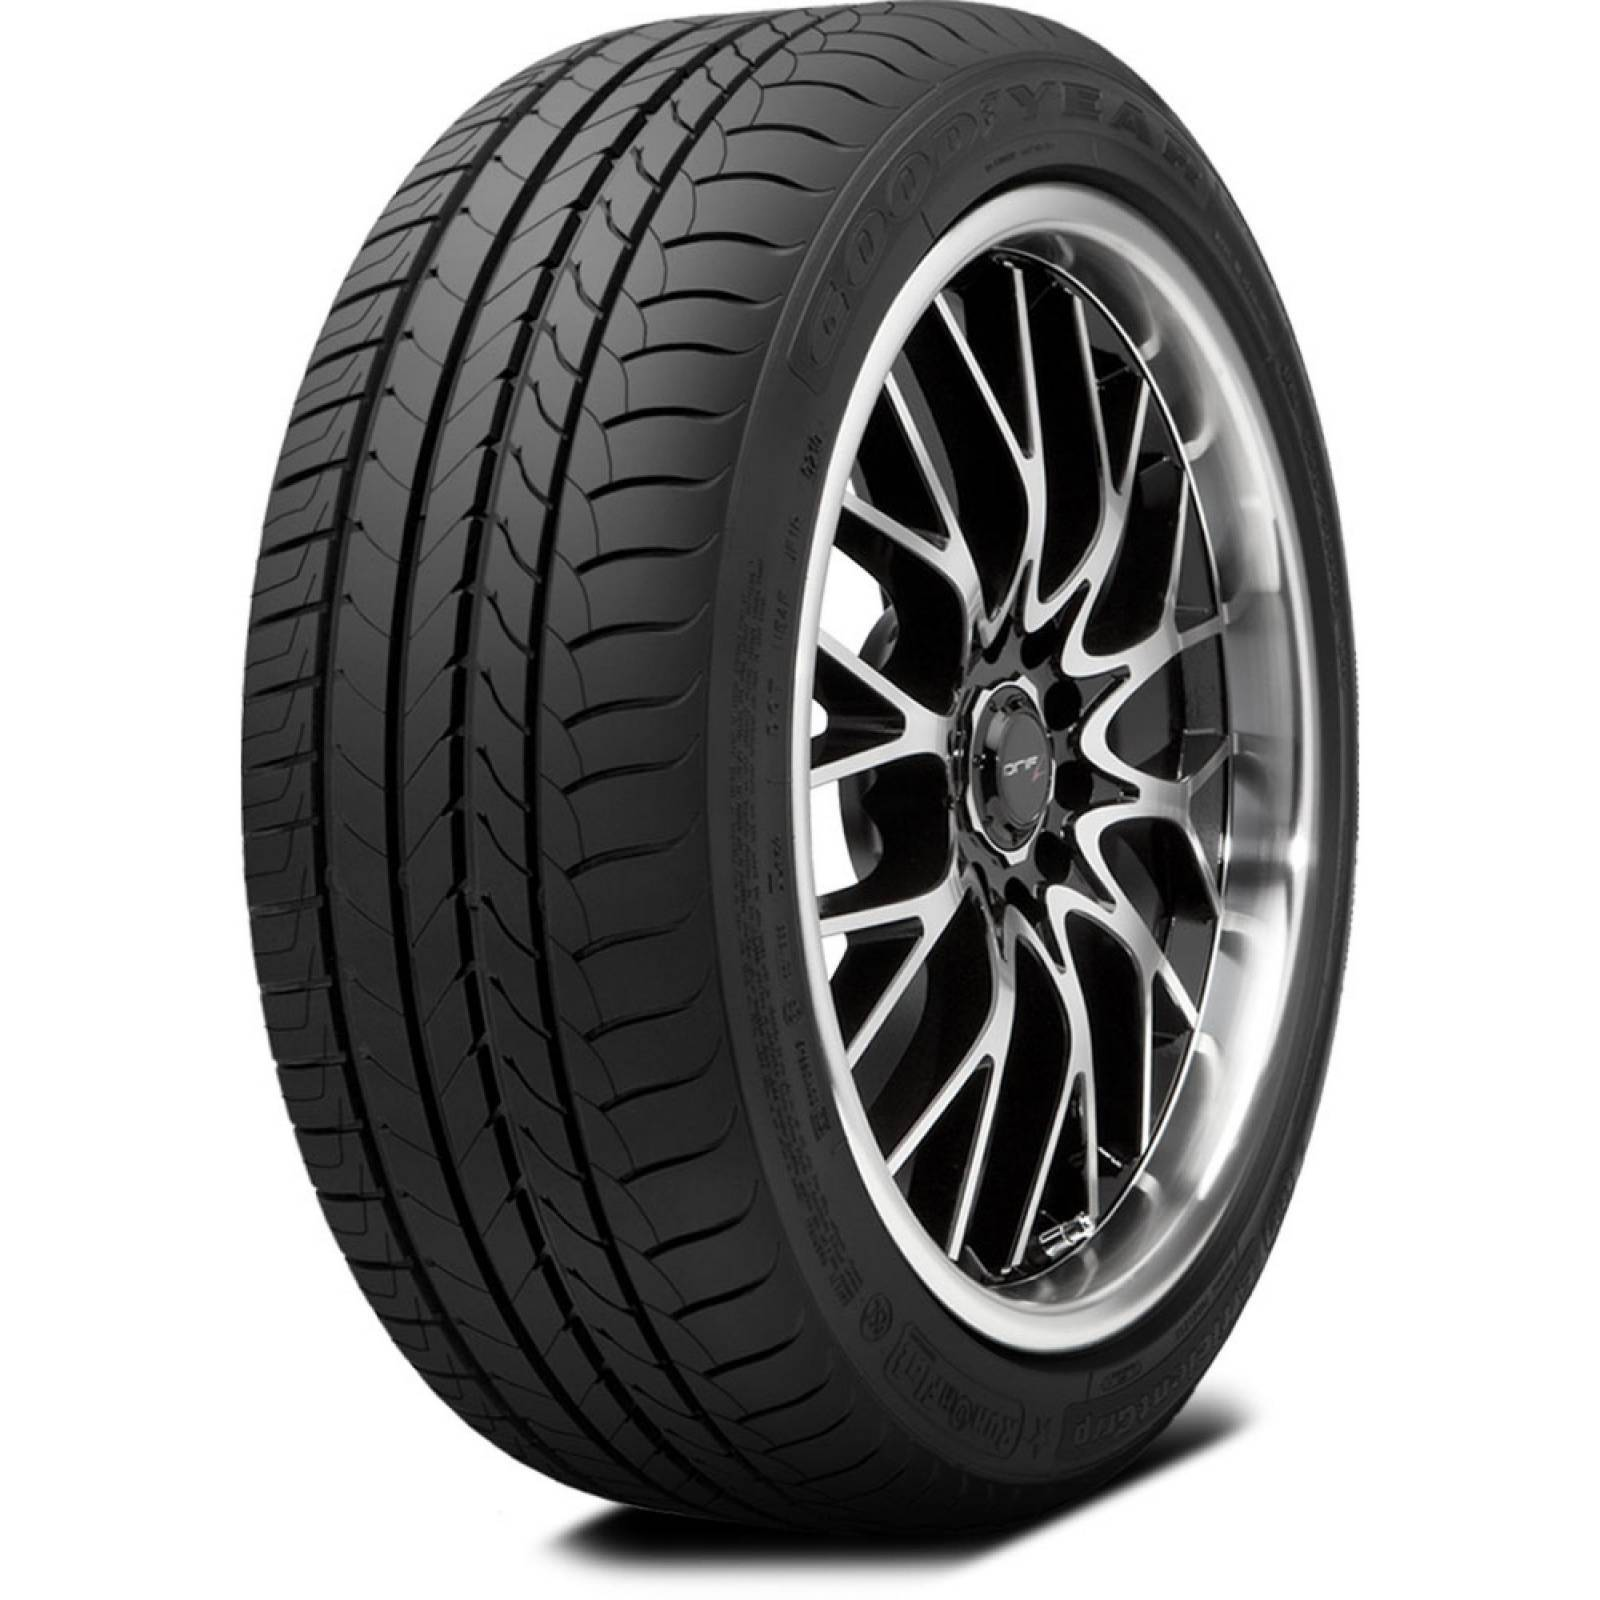 PNEU 225/45R 18 91Y EFFICIENTGRIP RFT GOODYEAR RUN FLAT - ORIGINAL BMW